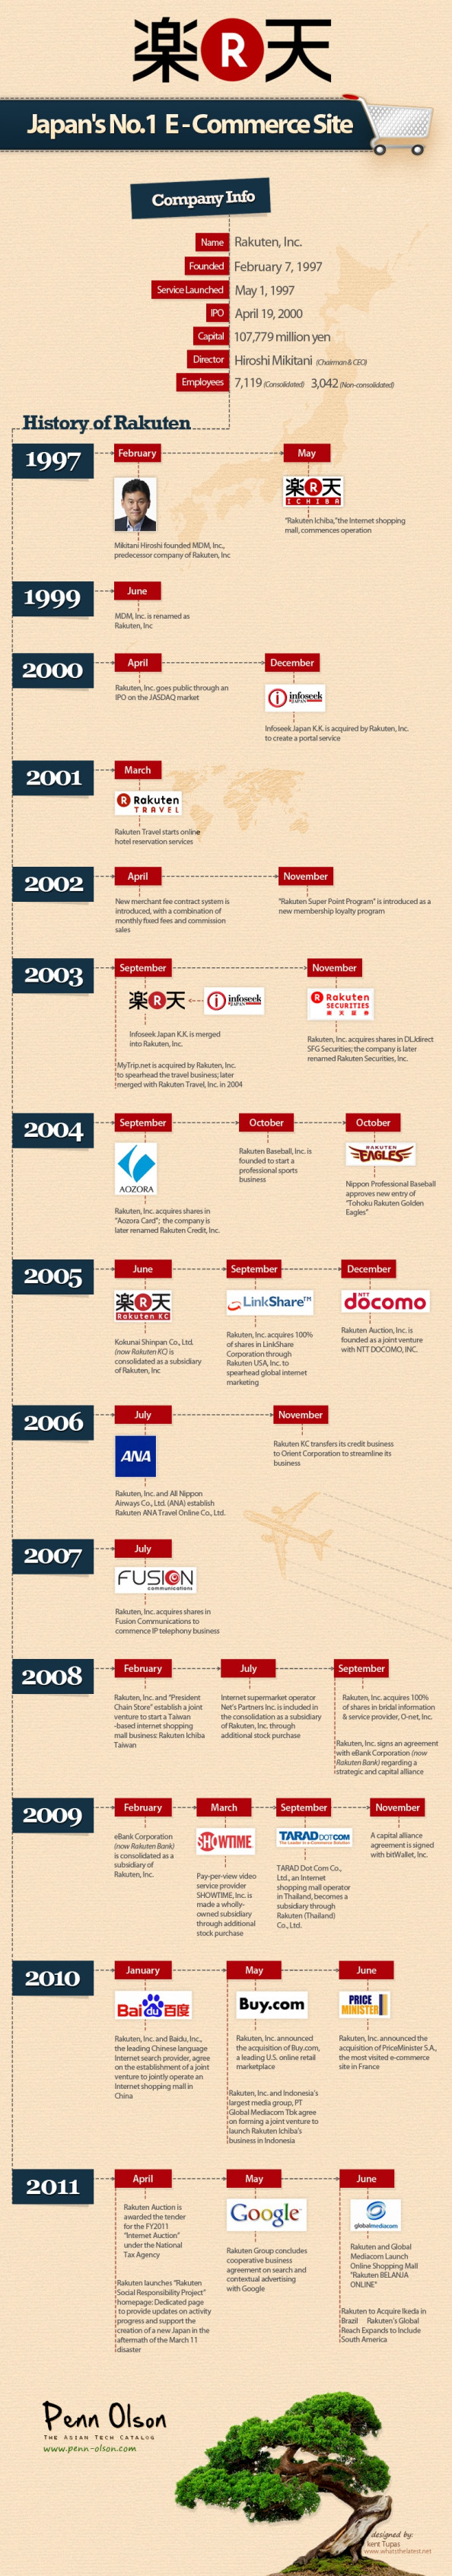 The History of Rakuten, Japan&#039;s Largest E-Commerce Site Infographic